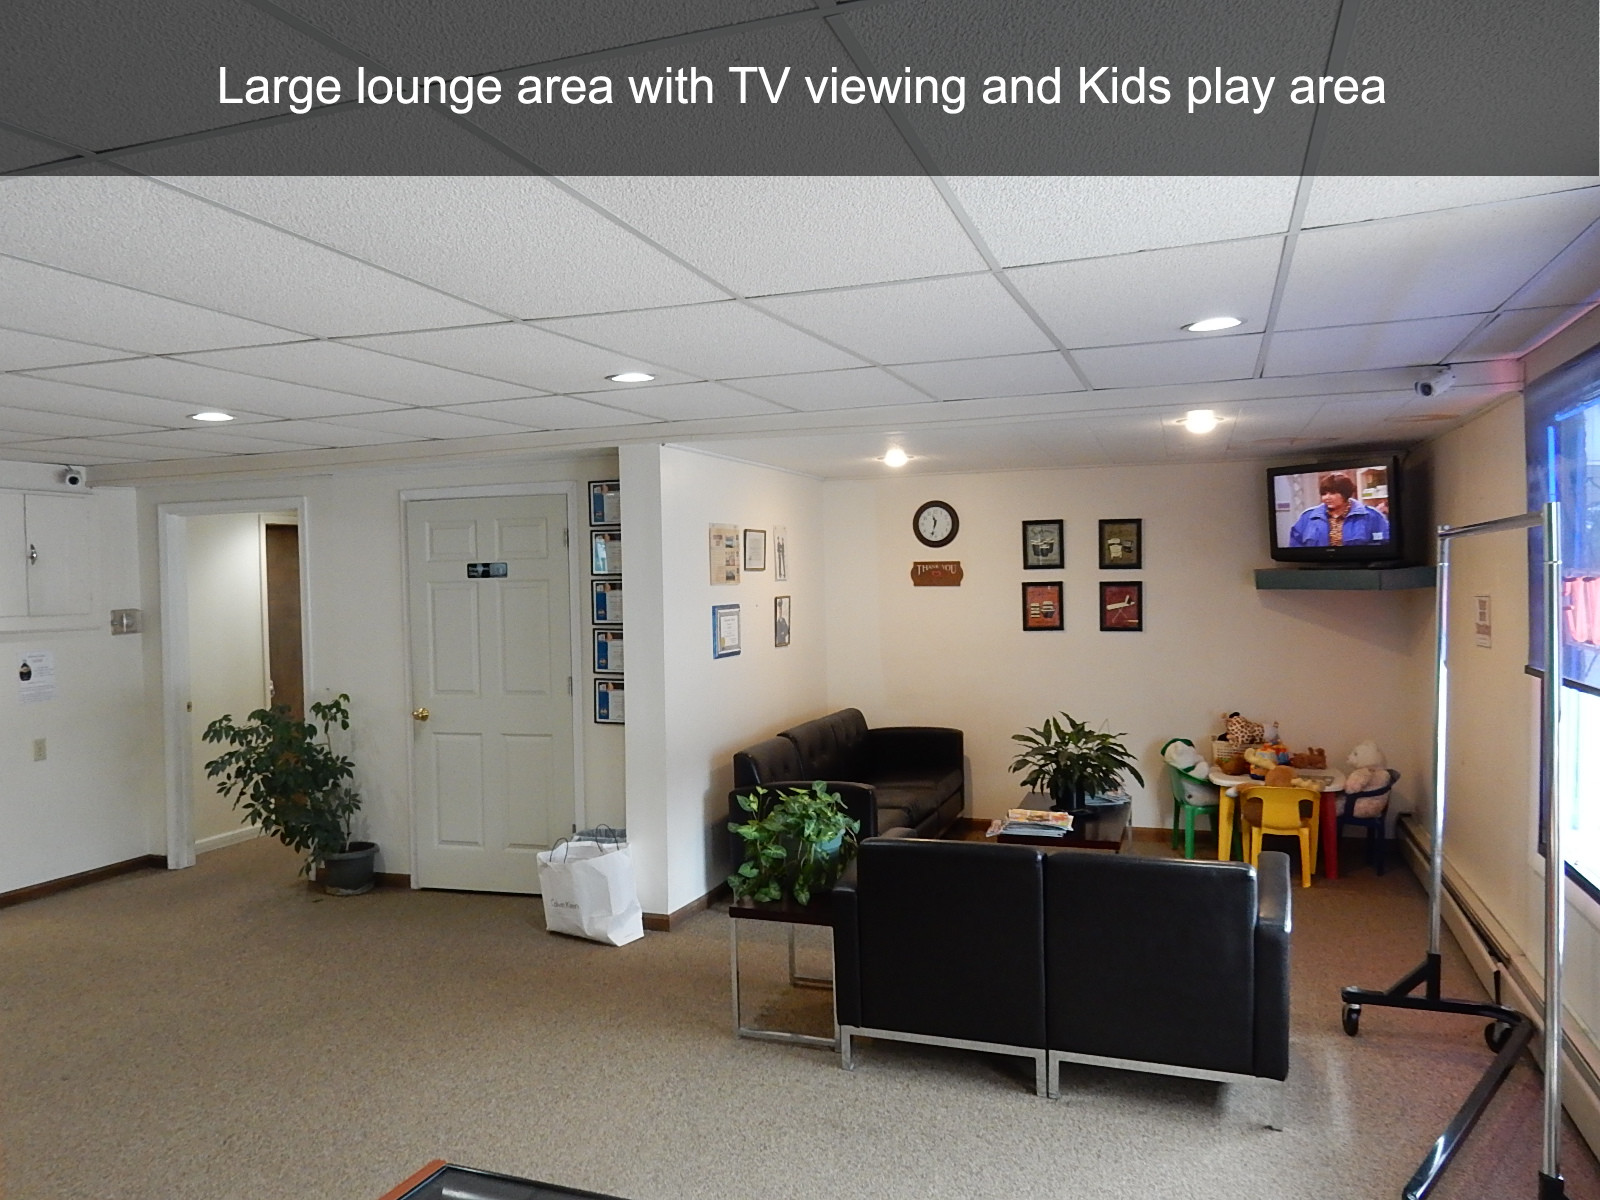 Large lounge area with TV viewing and Kids play area